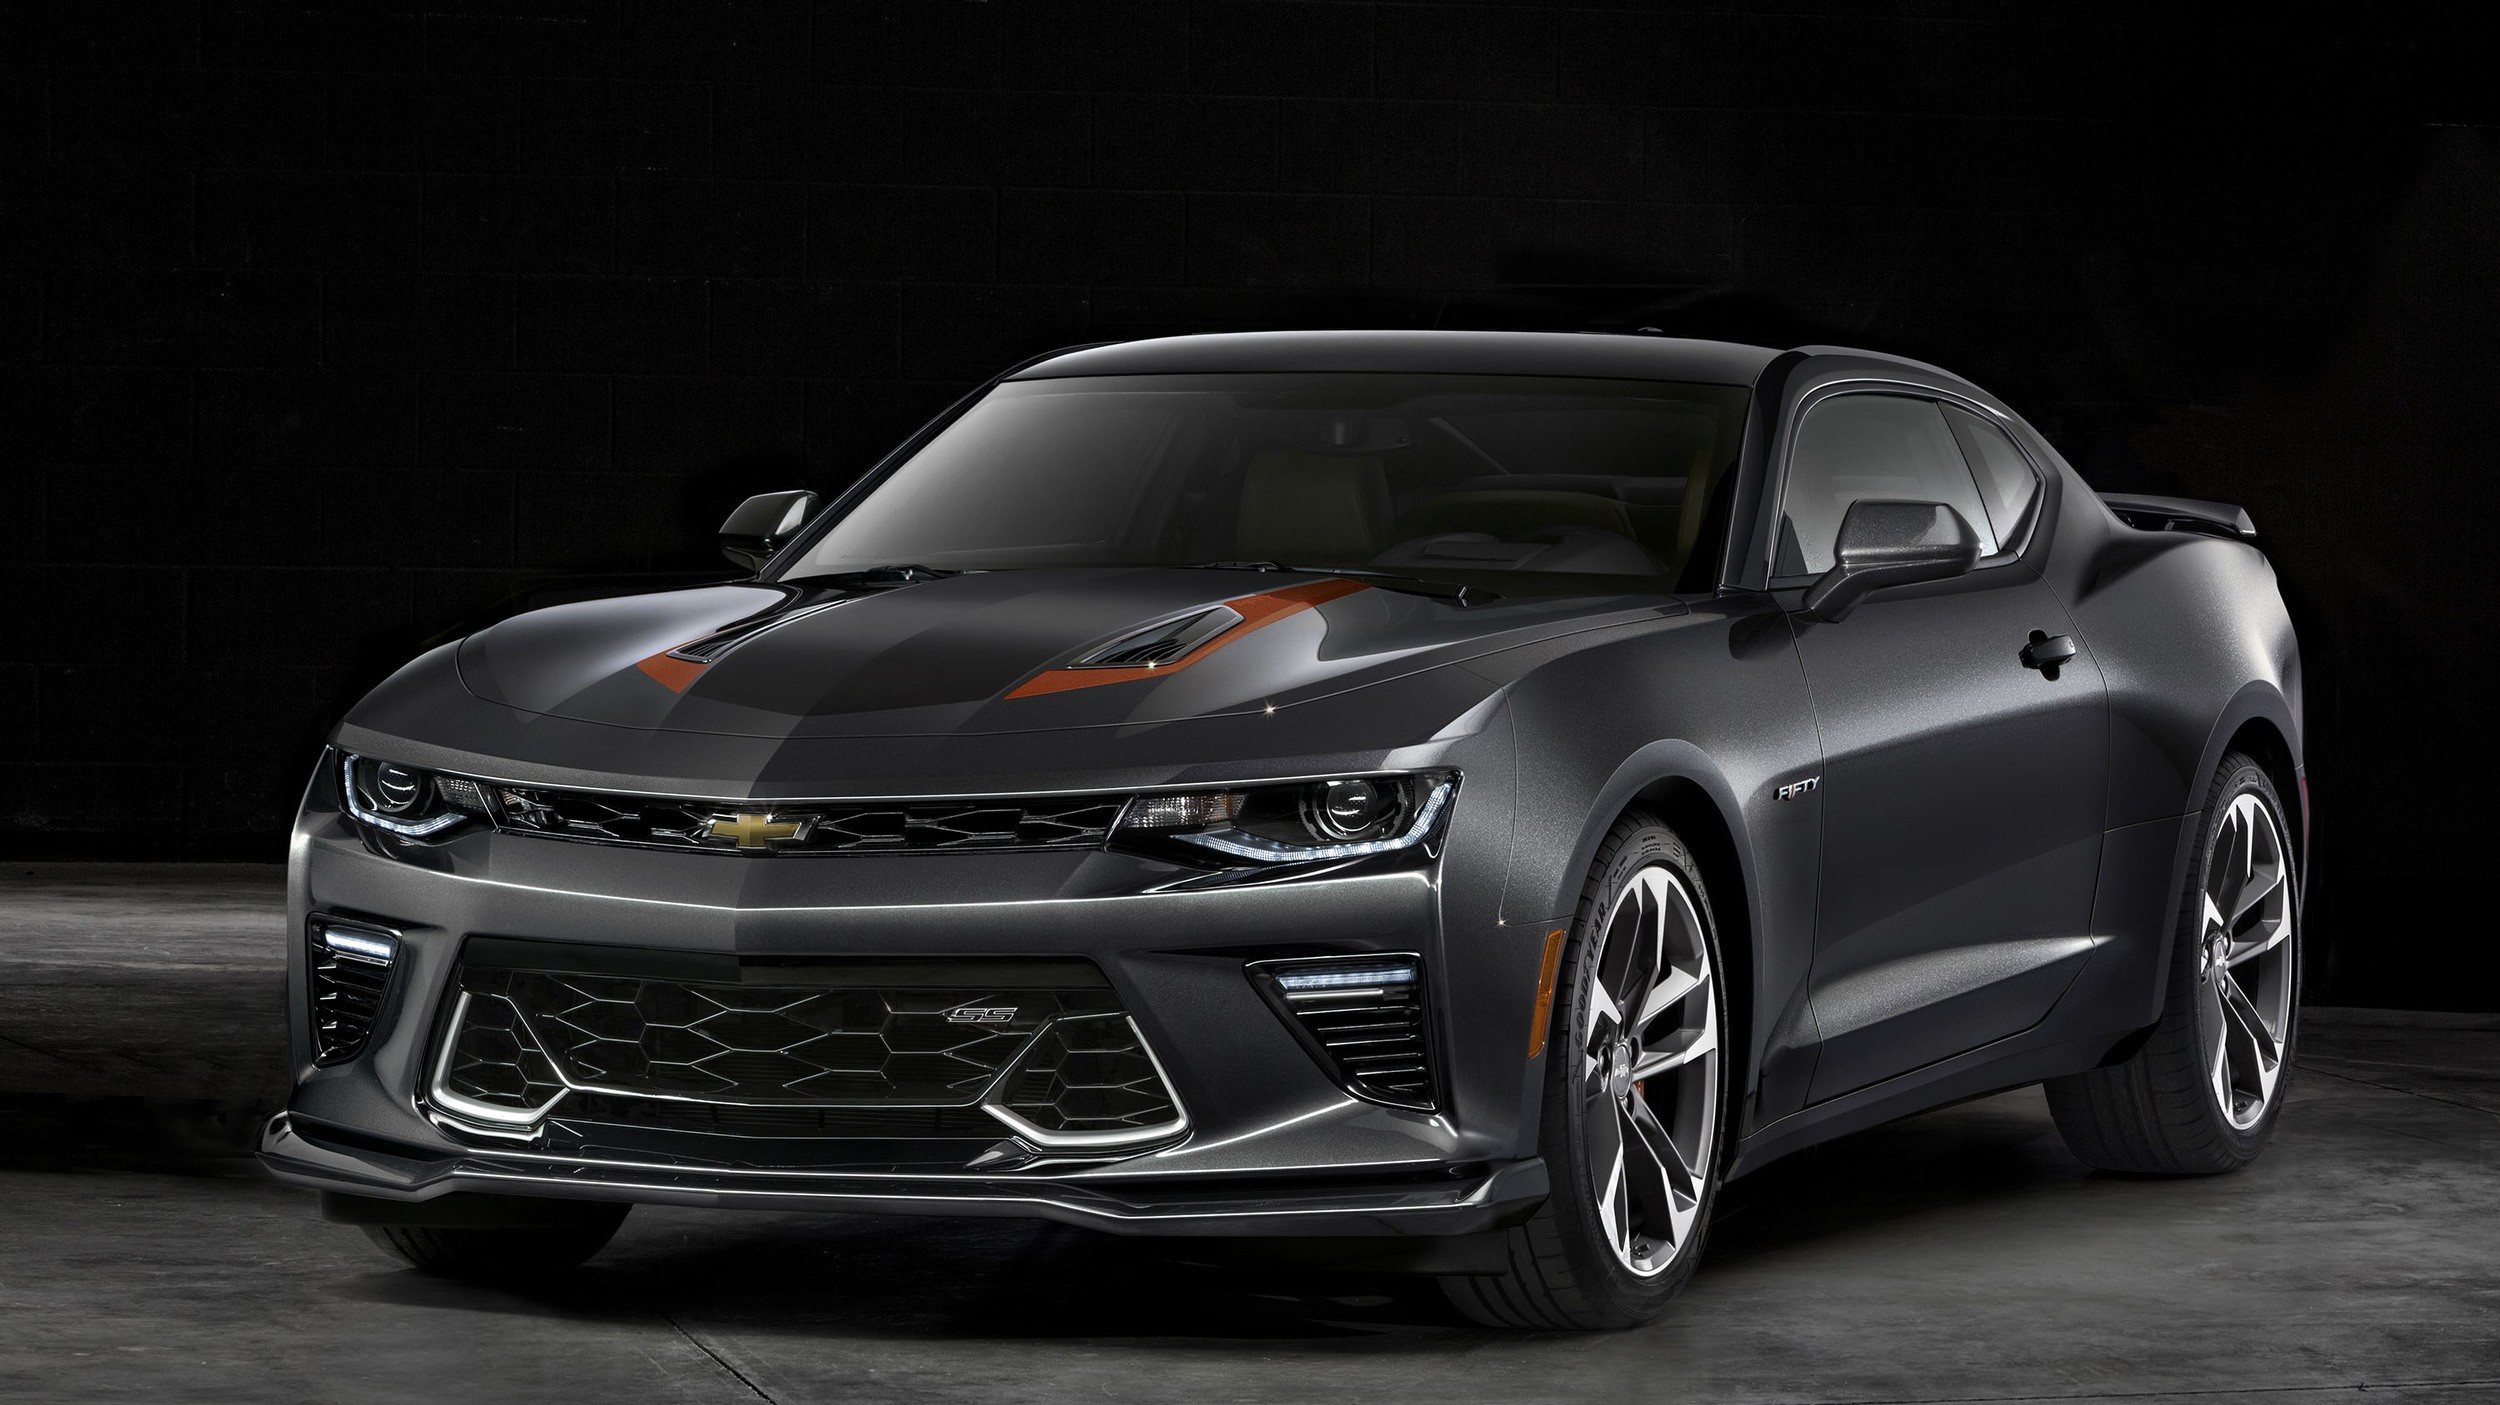 epic 50th anniversary edition camaro is epic according to chevrolet